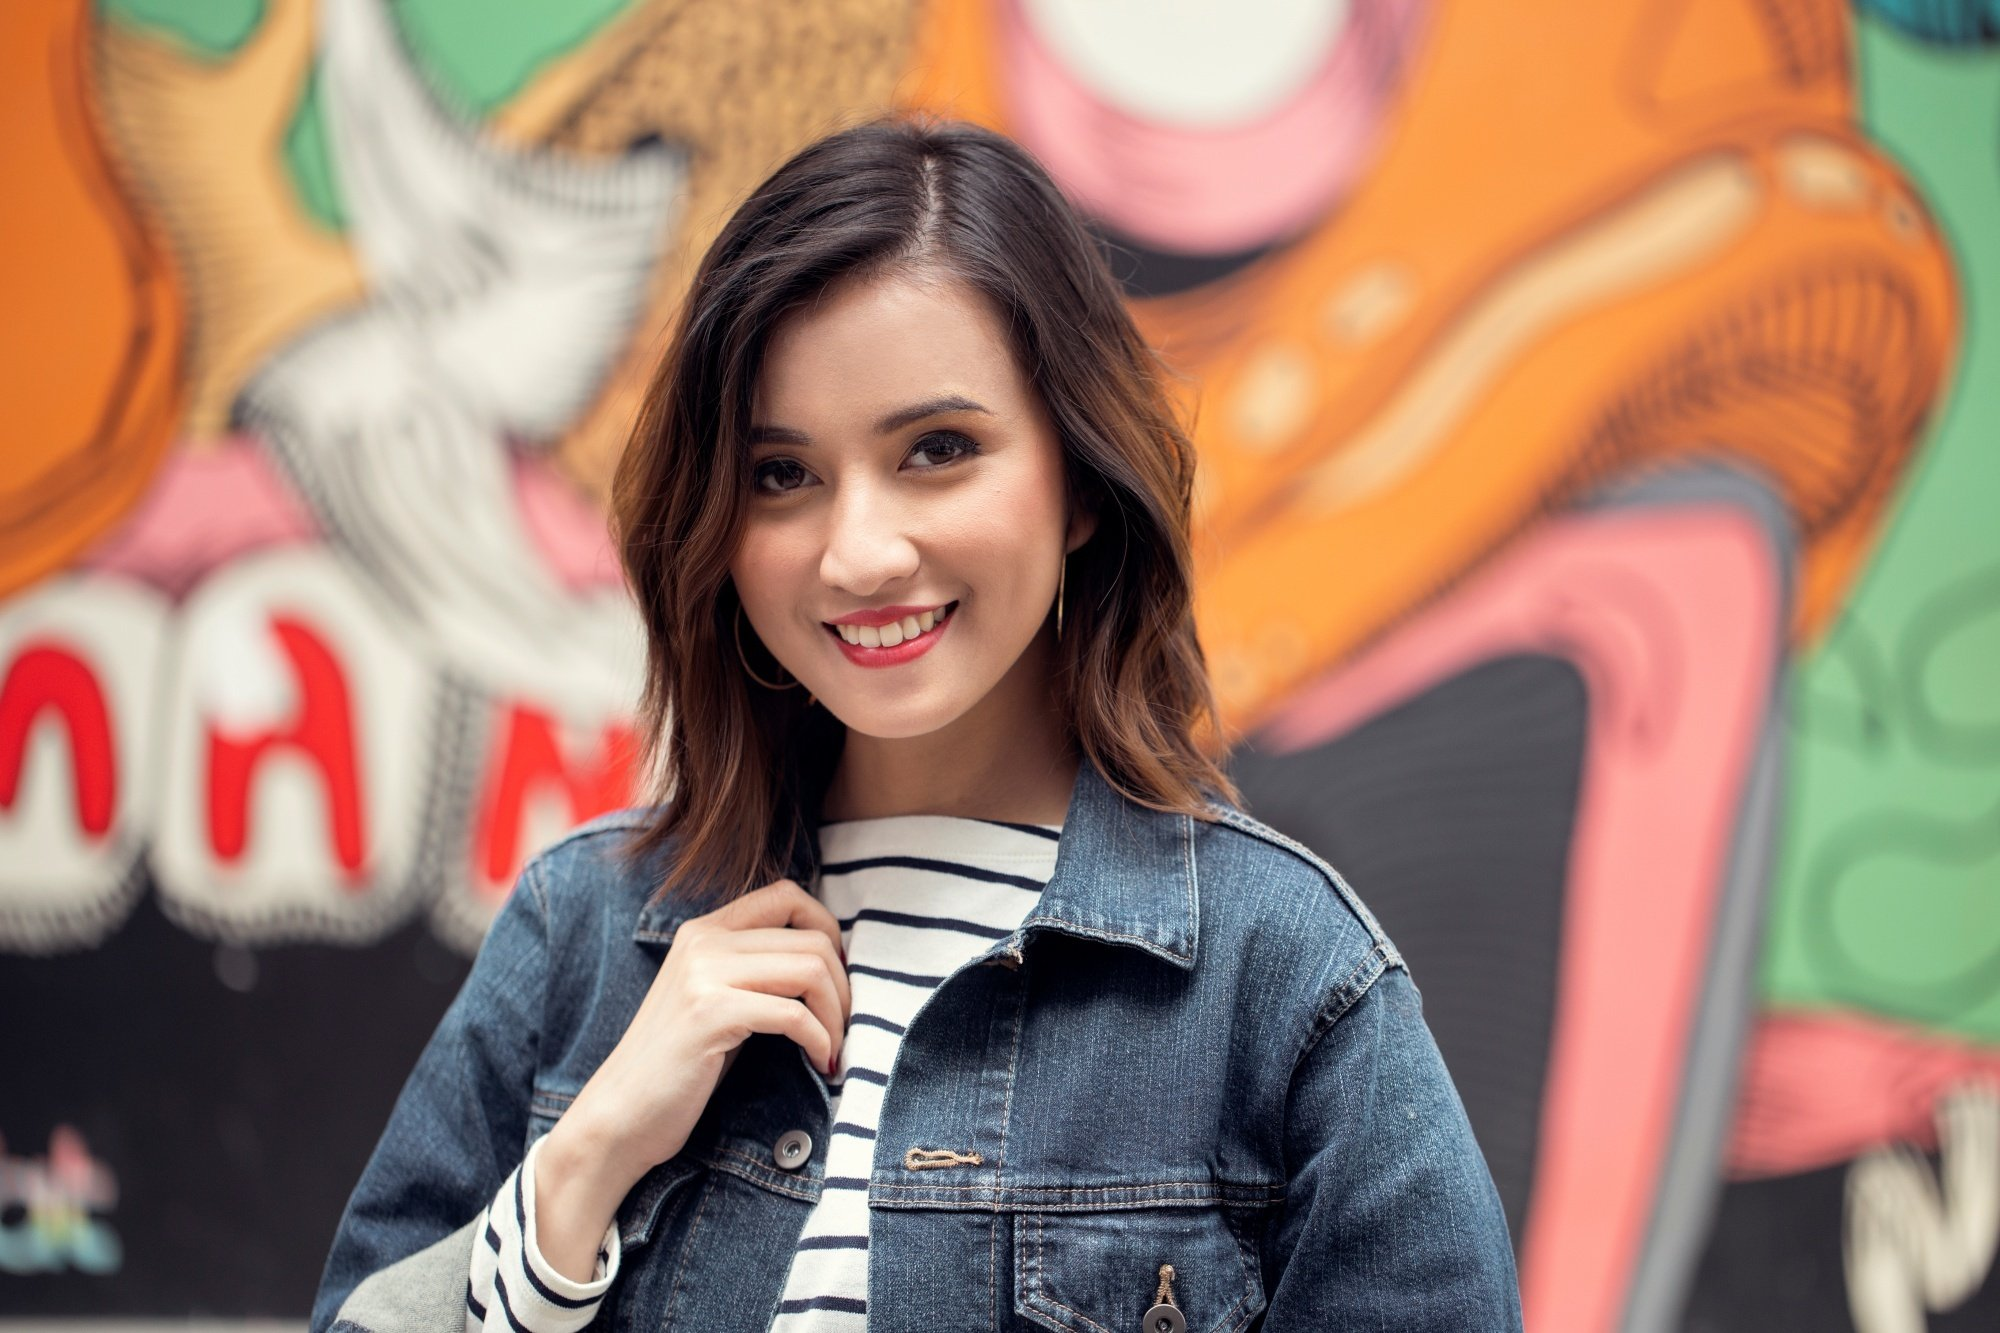 Long layered bob: Asian woman with messy layered bob wearing a denim jacket against a mural